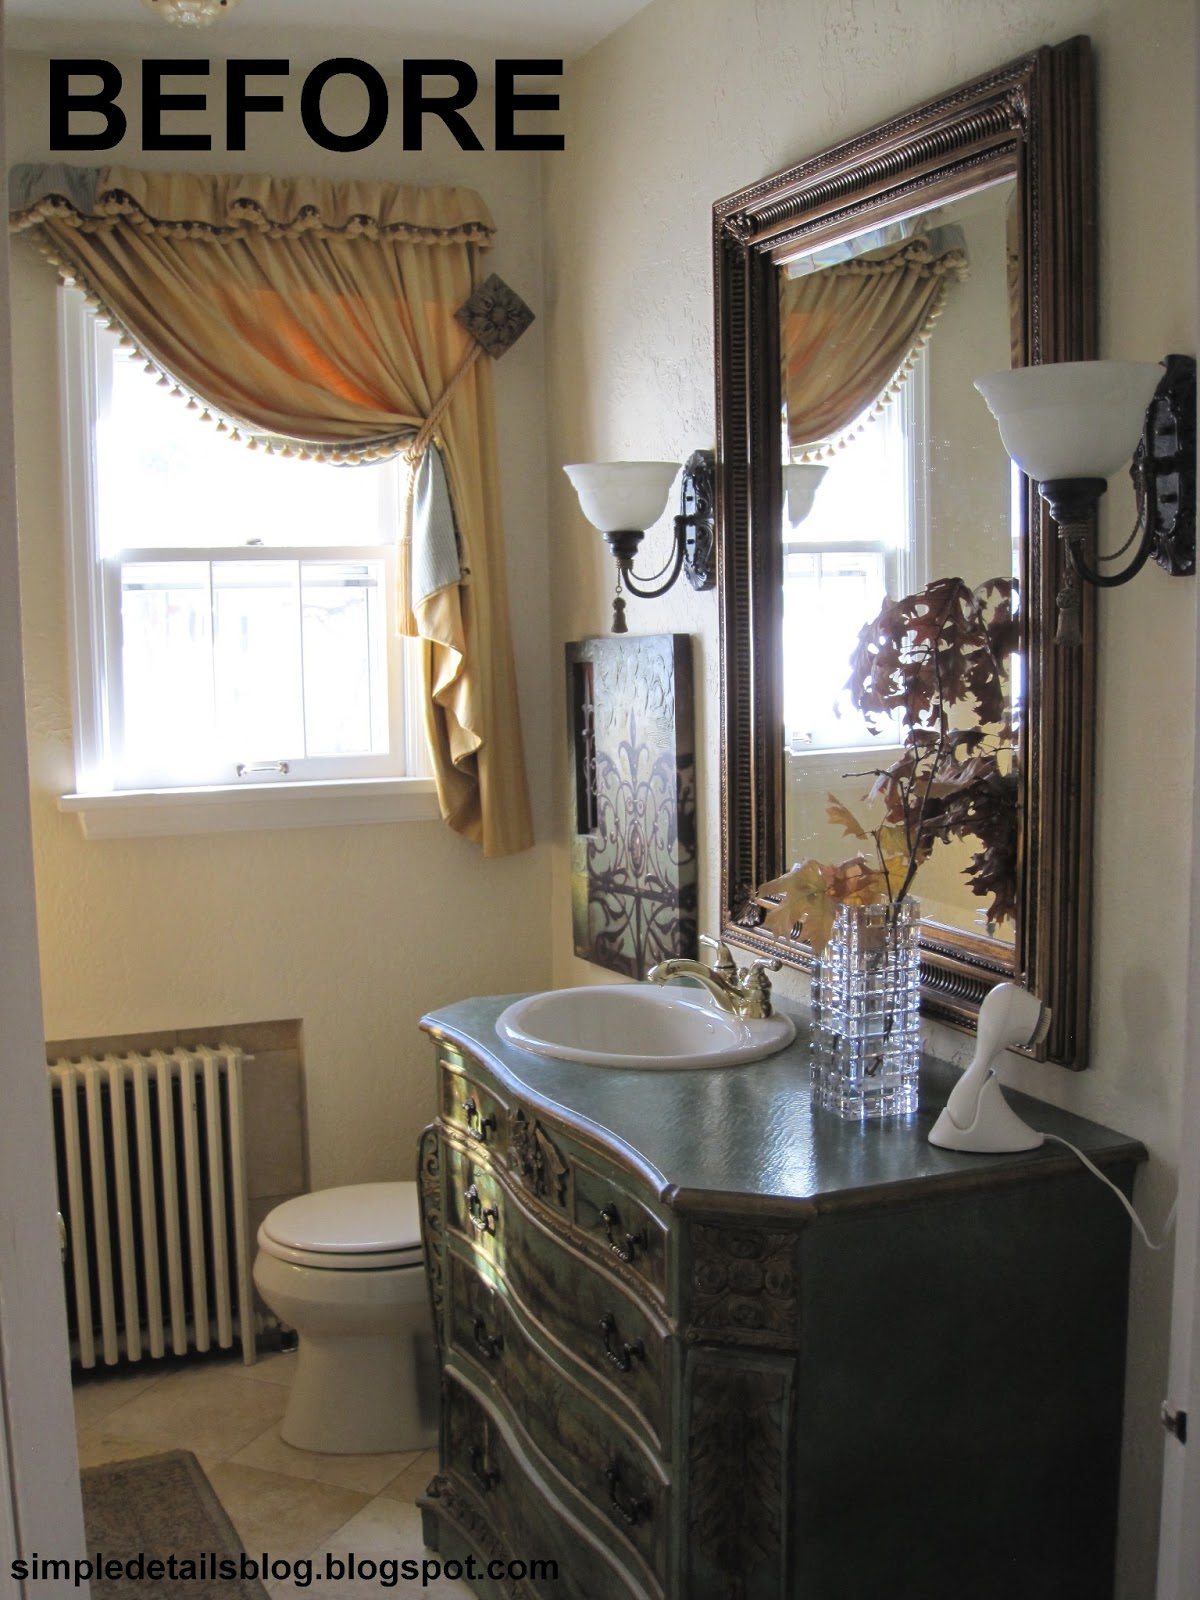 Diy bathroom window curtains - I Searched Long And Hard For That Matching Art